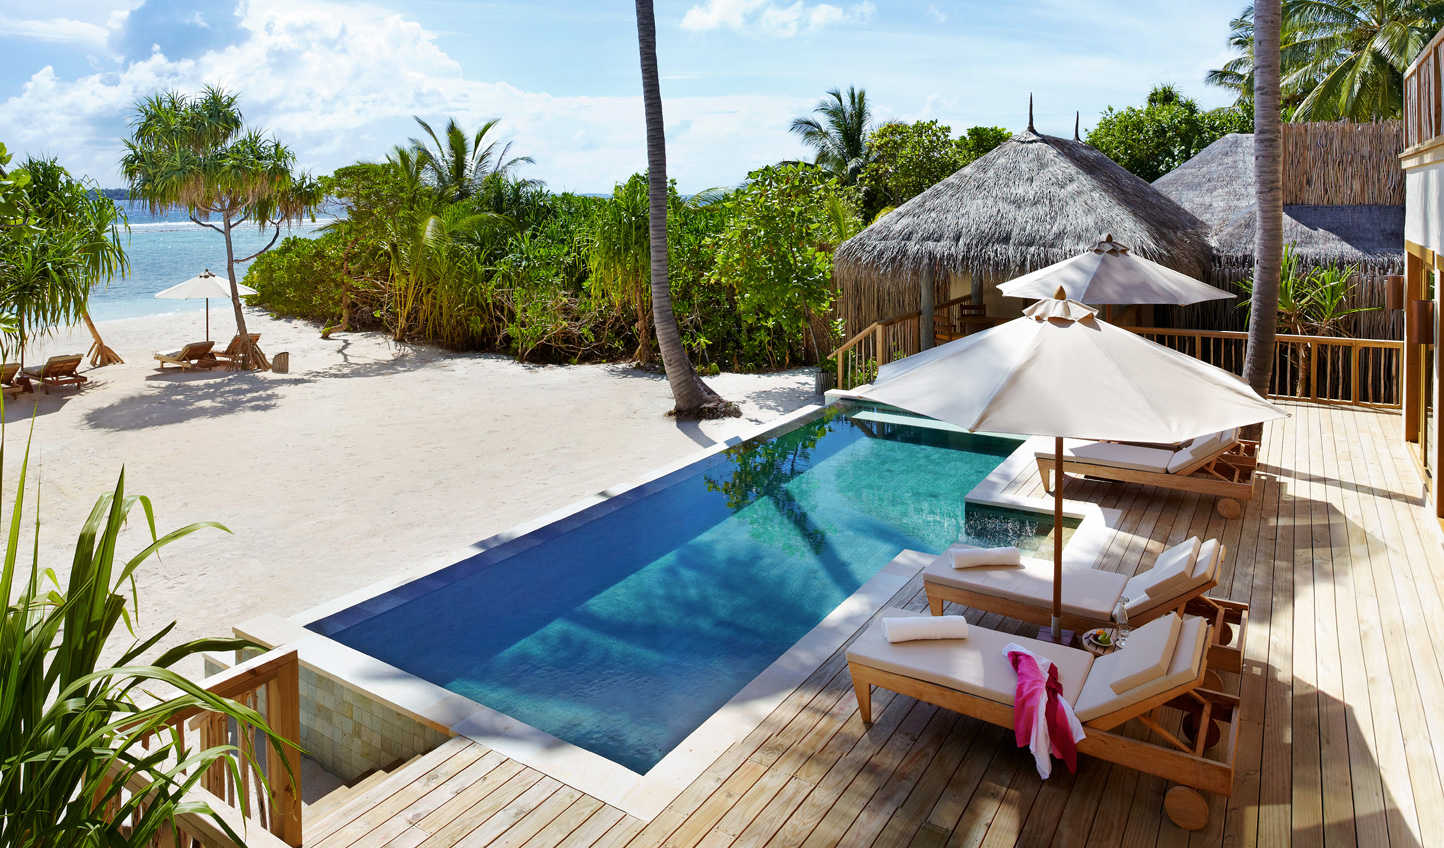 Step straight from the pool into the Ocean without leaving the comfort of your villa